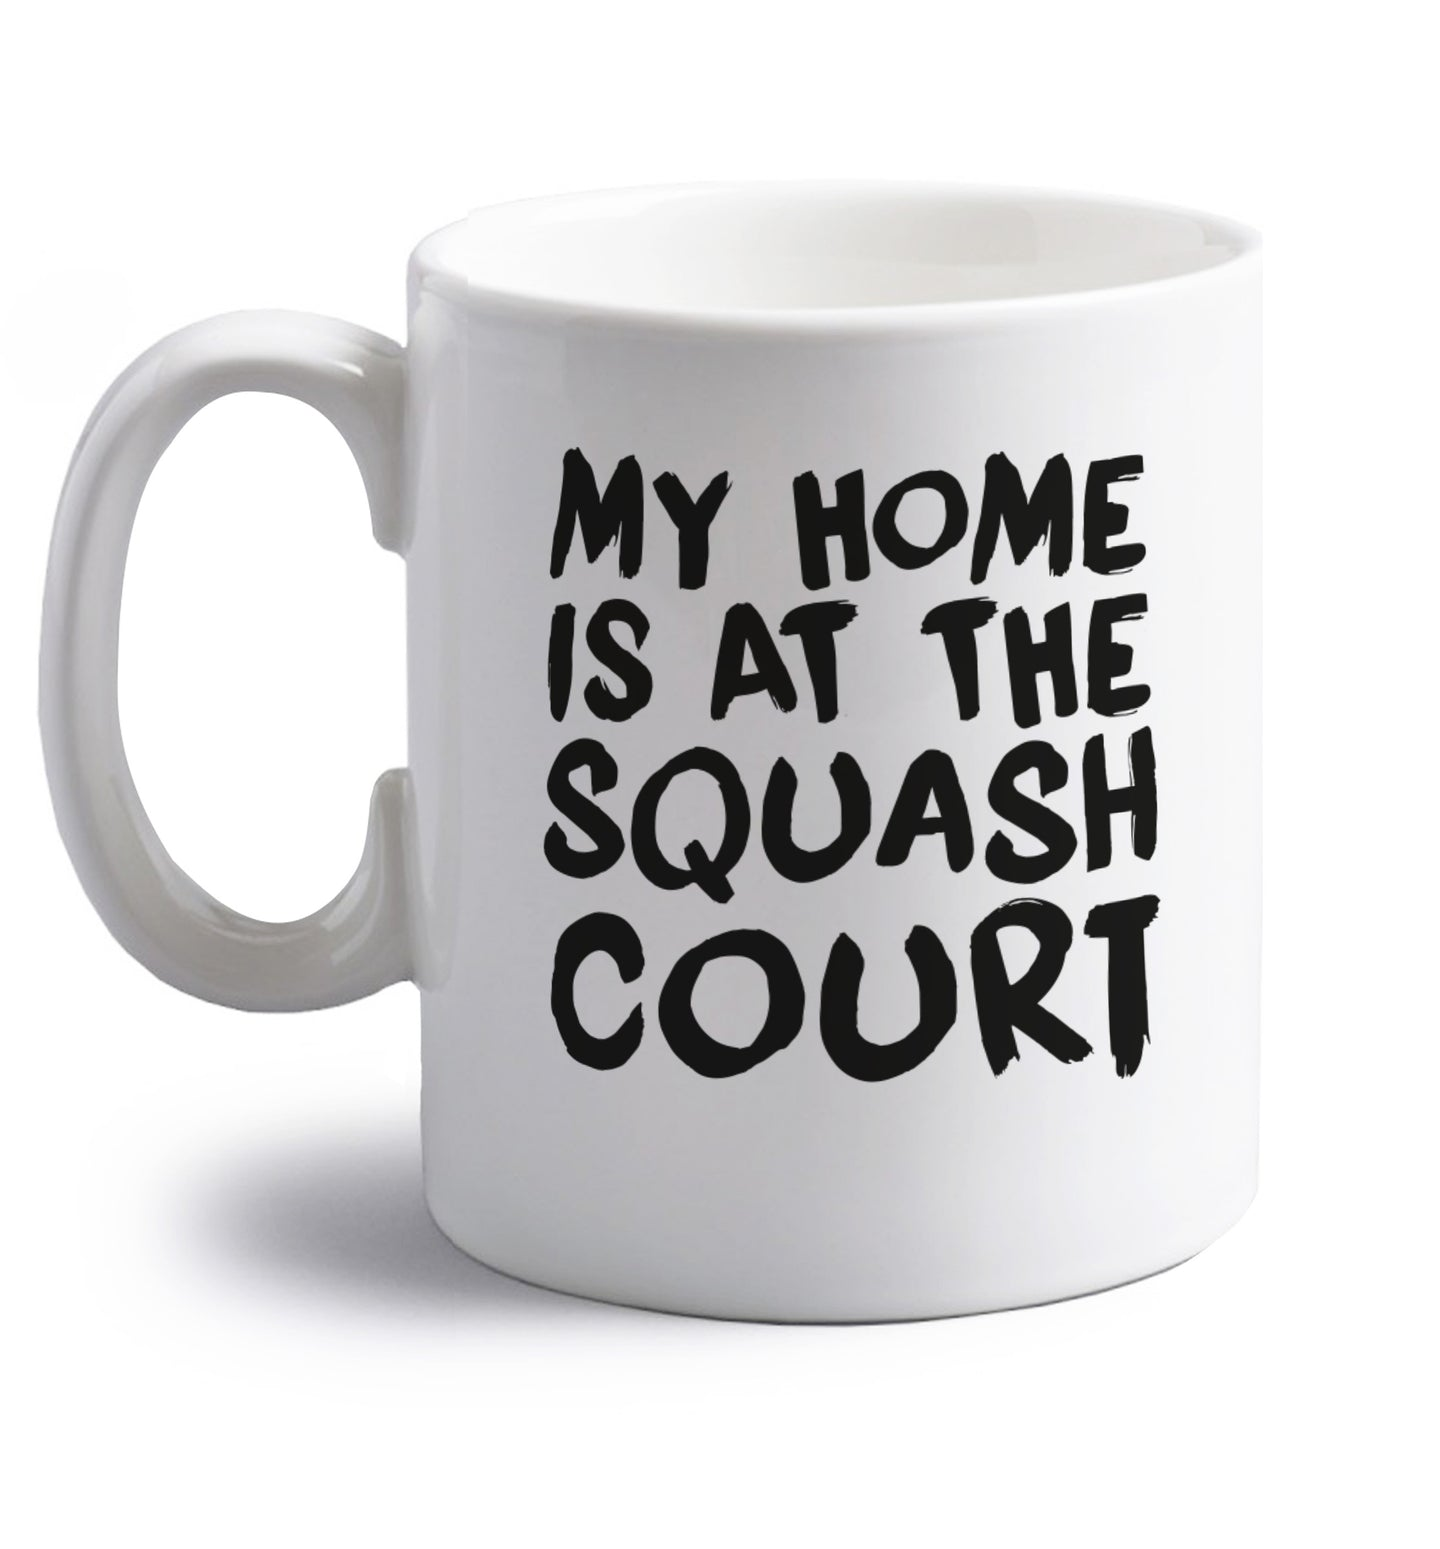 My home is at the squash court right handed white ceramic mug